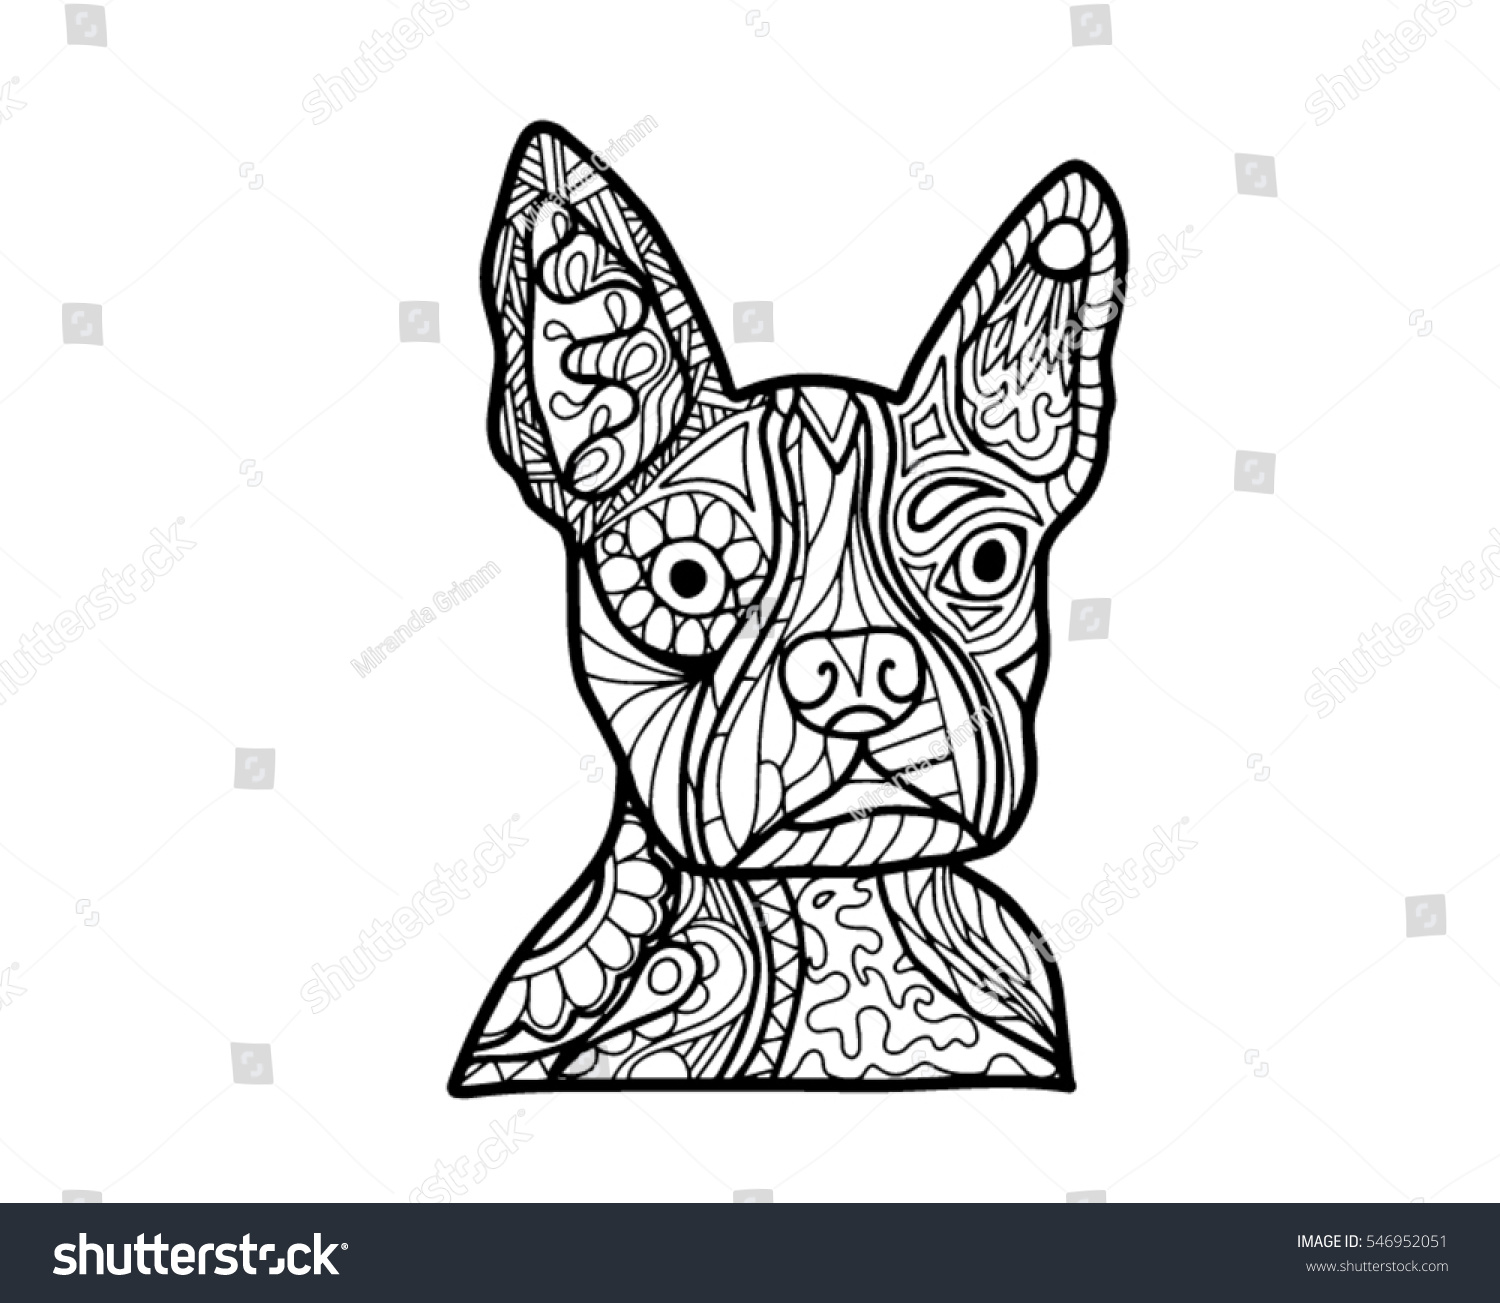 coloring book page boston terrier stock vector 546952051